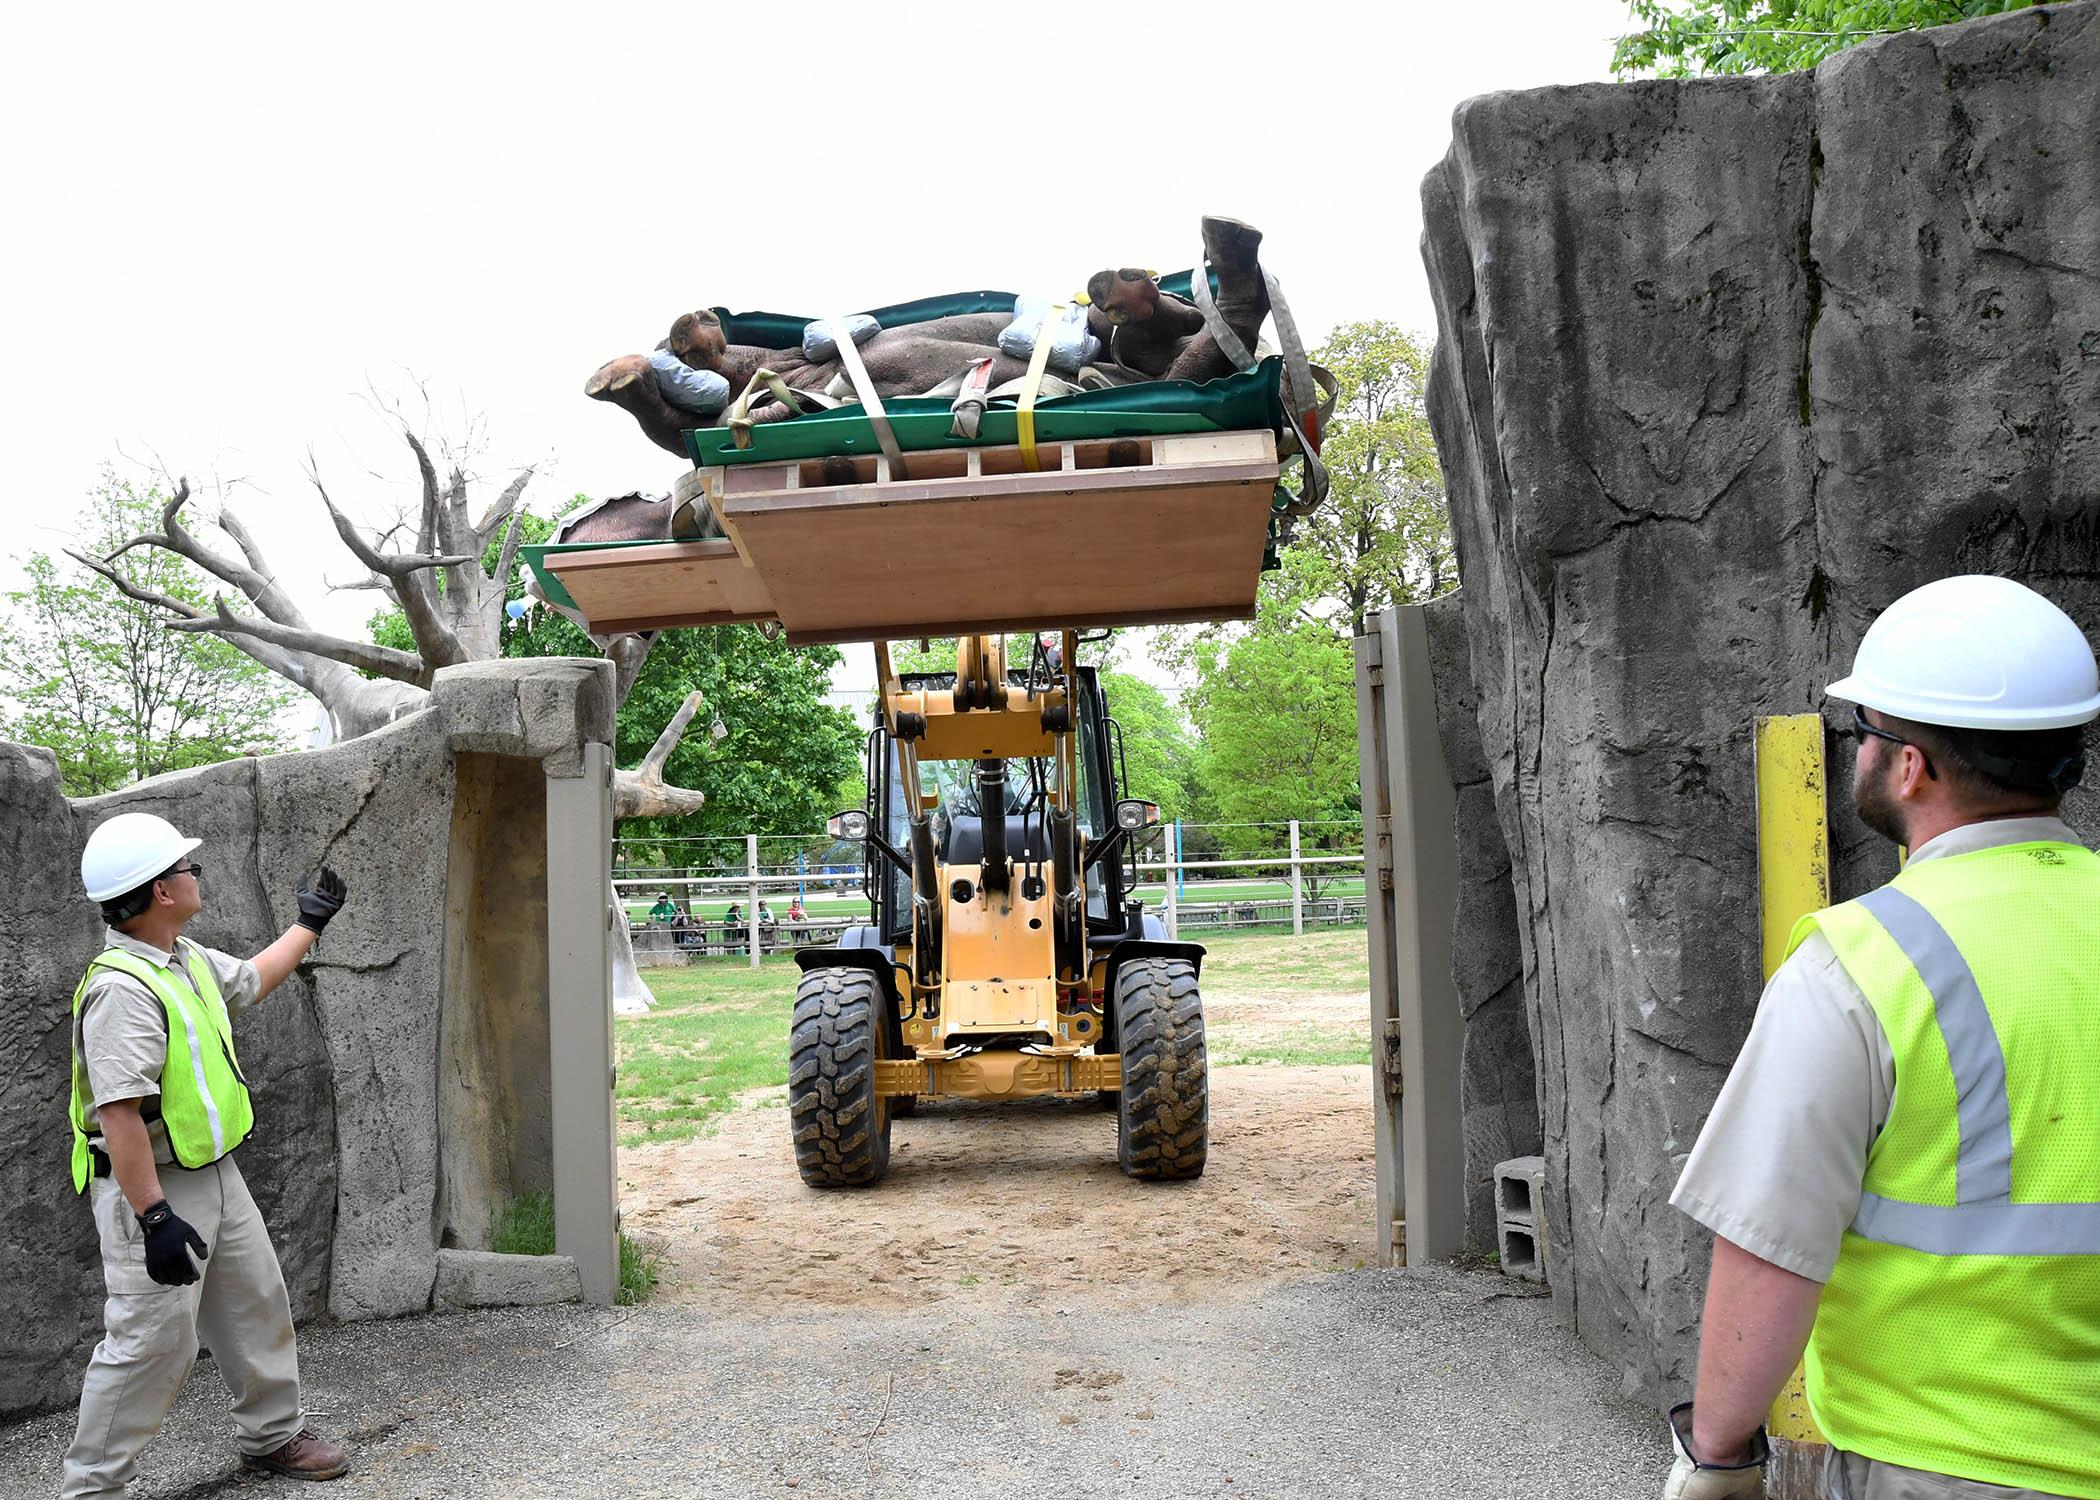 Vince Valderrama, left, and Jason Buttney, members of Brookfield Zoo's Grounds Department, direct the driver of a front-end loader carrying Layla, a 2,300-pound eastern black rhinoceros, during her transport for a CT scan. (Jim Schulz / Chicago Zoological Society)